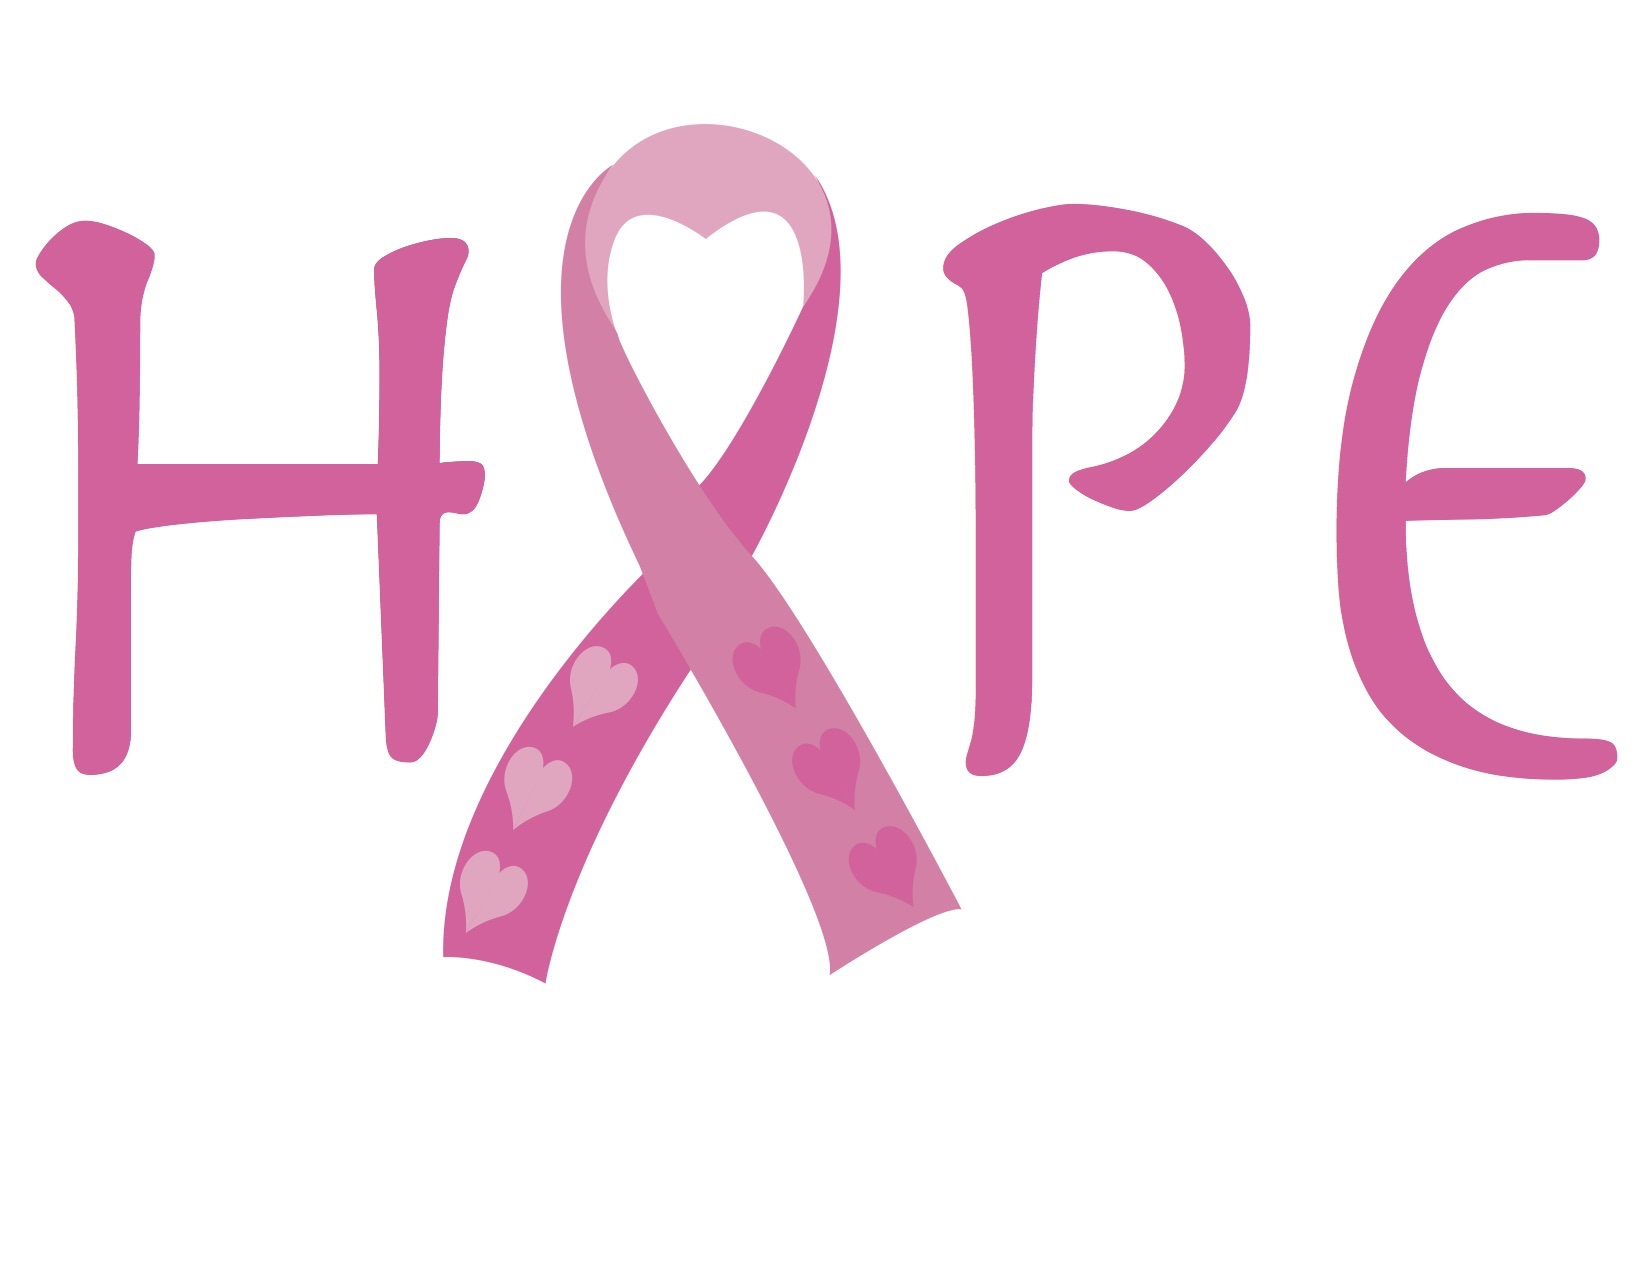 Facts And Myths Regarding Breast Cancer Prevention - Preventing Breast Cancer With Right Facts